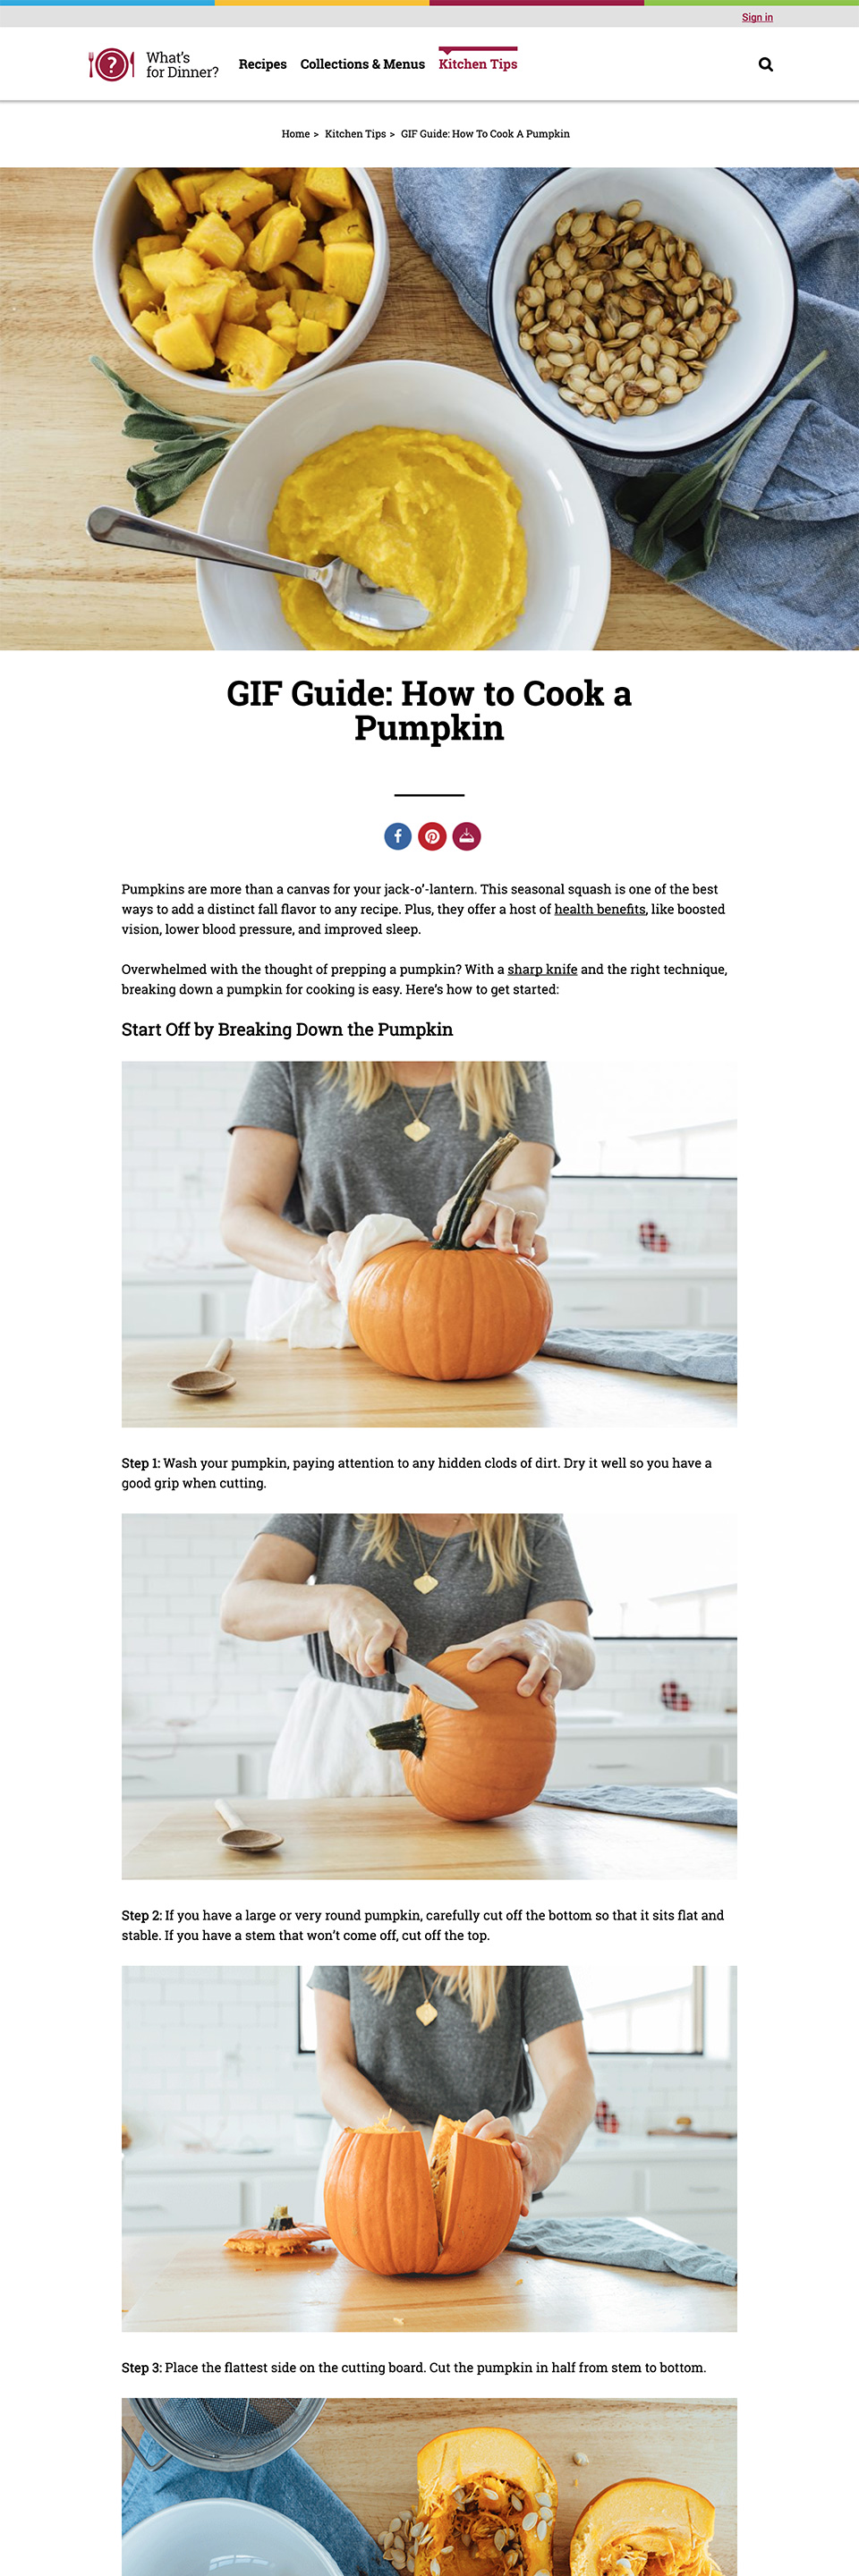 Whats-For-Dinner--GIF-Guide-How-to-Cook-a-Pumpkin